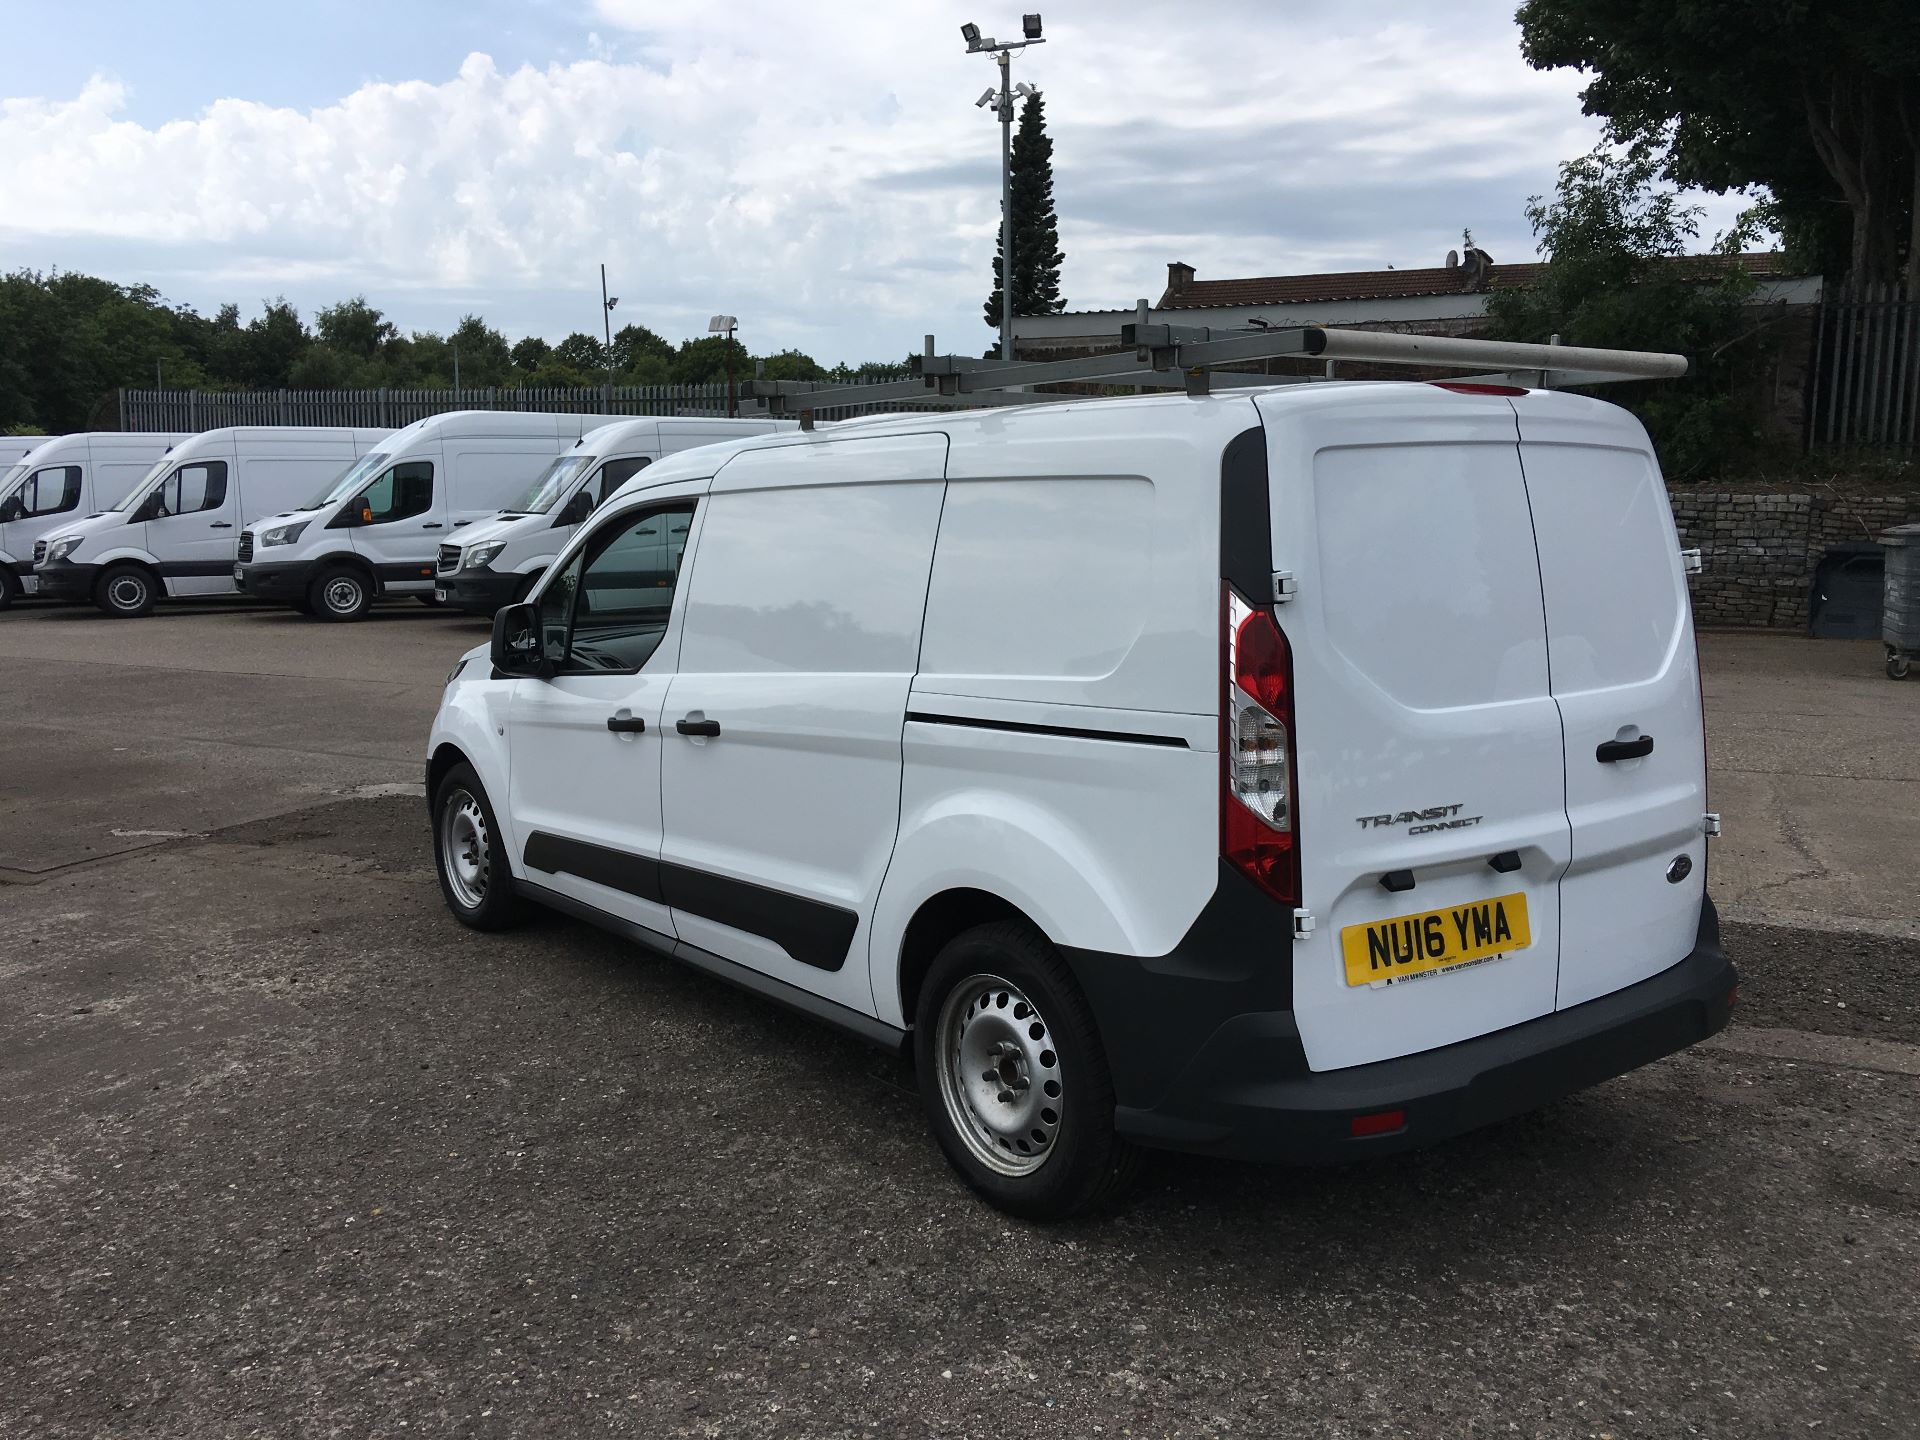 2016 Ford Transit Connect 220 L1 DIESEL 1.5 TDCI 100PS VAN EURO 6 (NU16YMA) Image 11